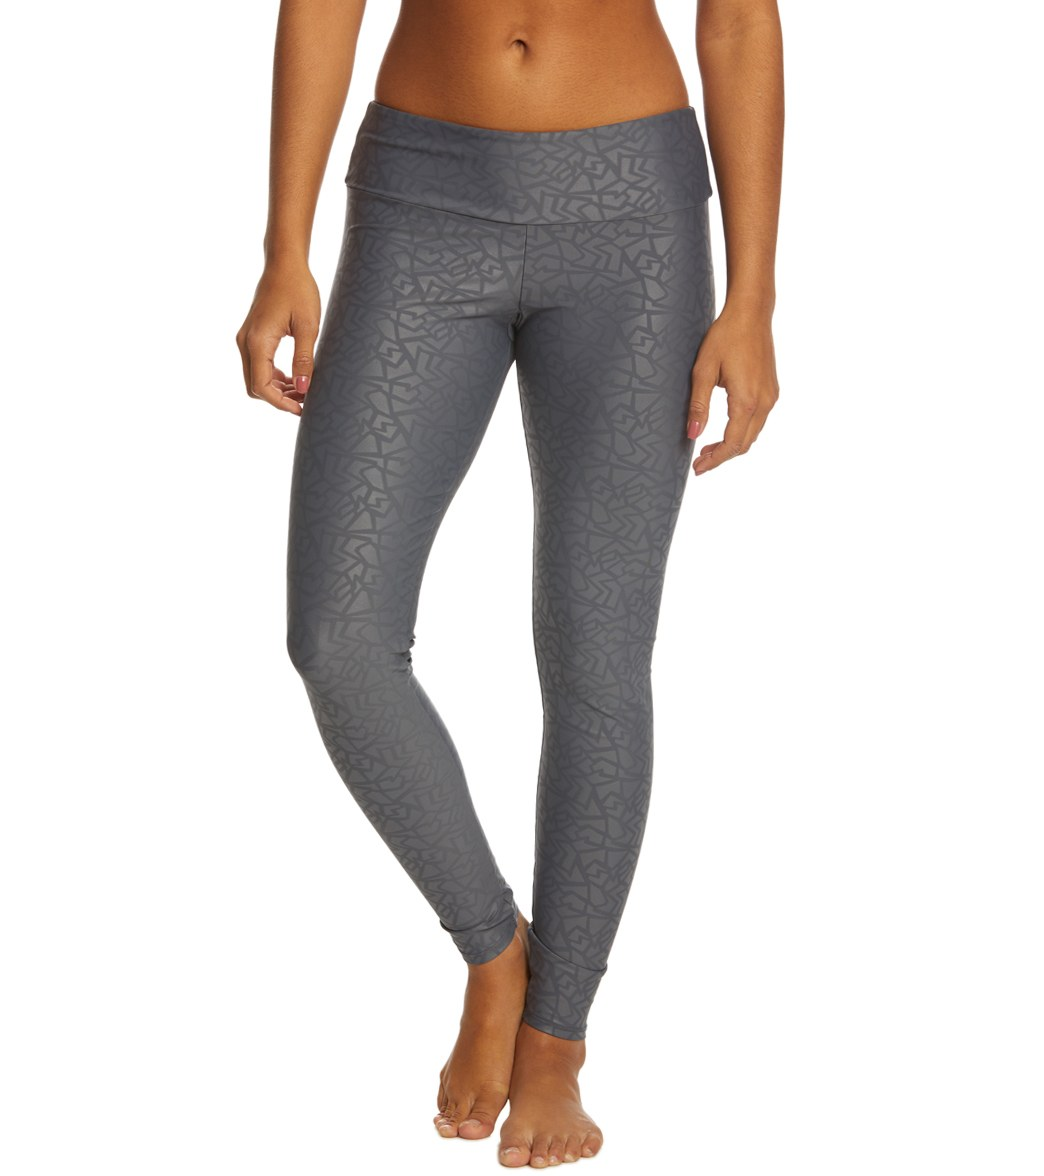 a9cbbaa7e48c2 Onzie Long Legging at YogaOutlet.com - Free Shipping